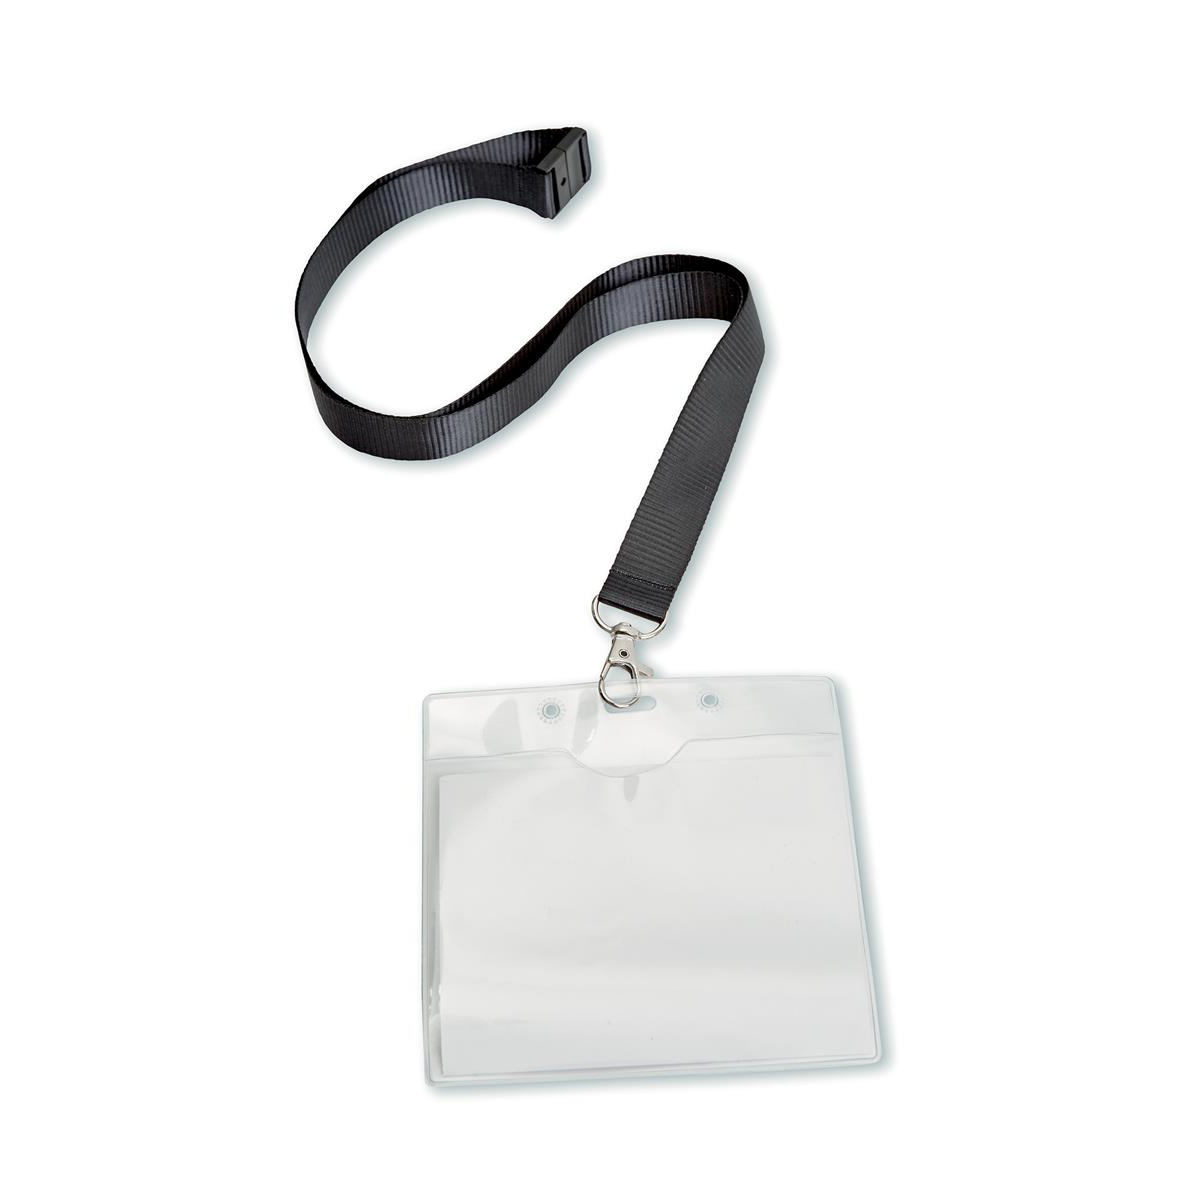 5 Star Office PVC Name Badge with Textile Lanyard 110x90mm Pack 10